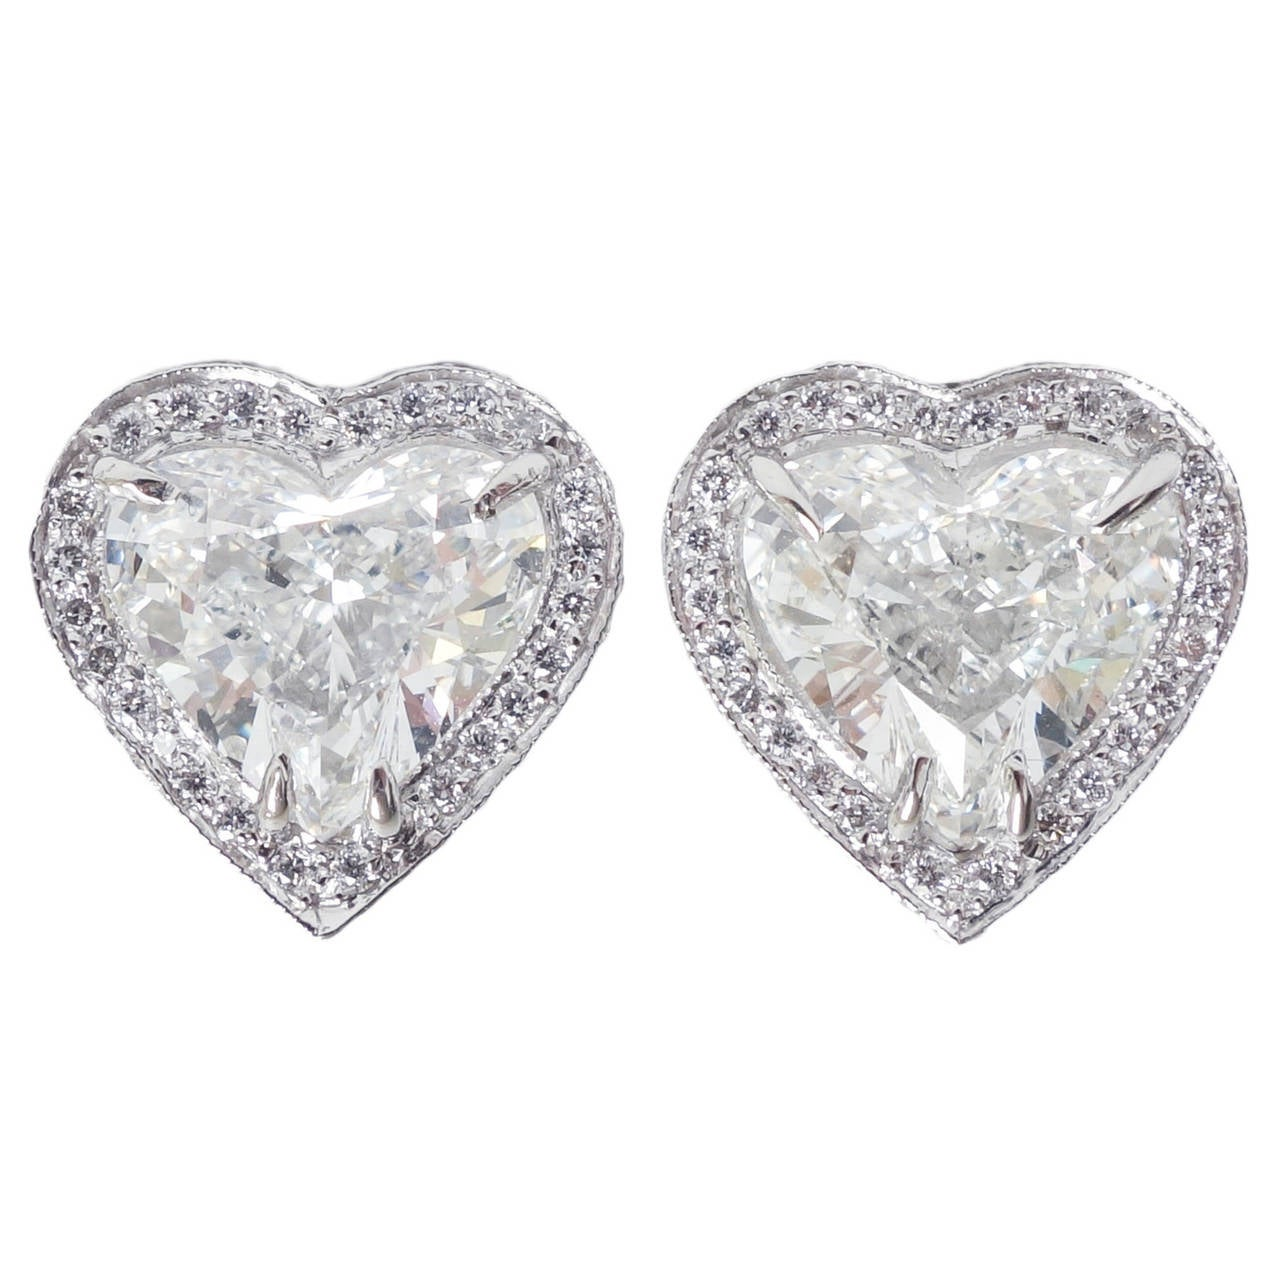 gold earrings lightbox heart product silver stud over shaped rose crystal platinum nadine austrian jardin